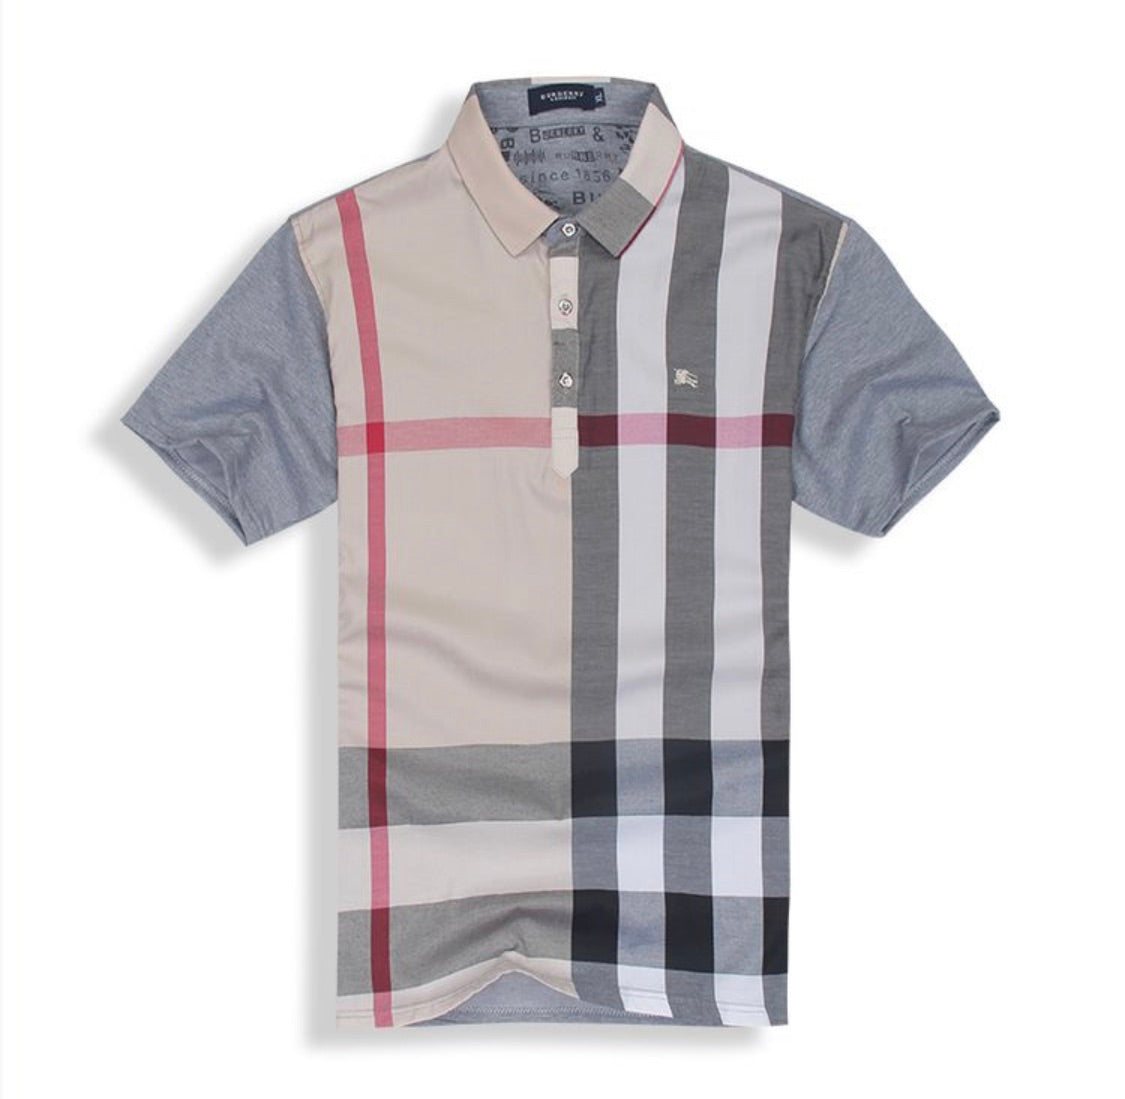 6652c8563 ... Load image into Gallery viewer, BURBERRY MENS POLO SHIRT ...